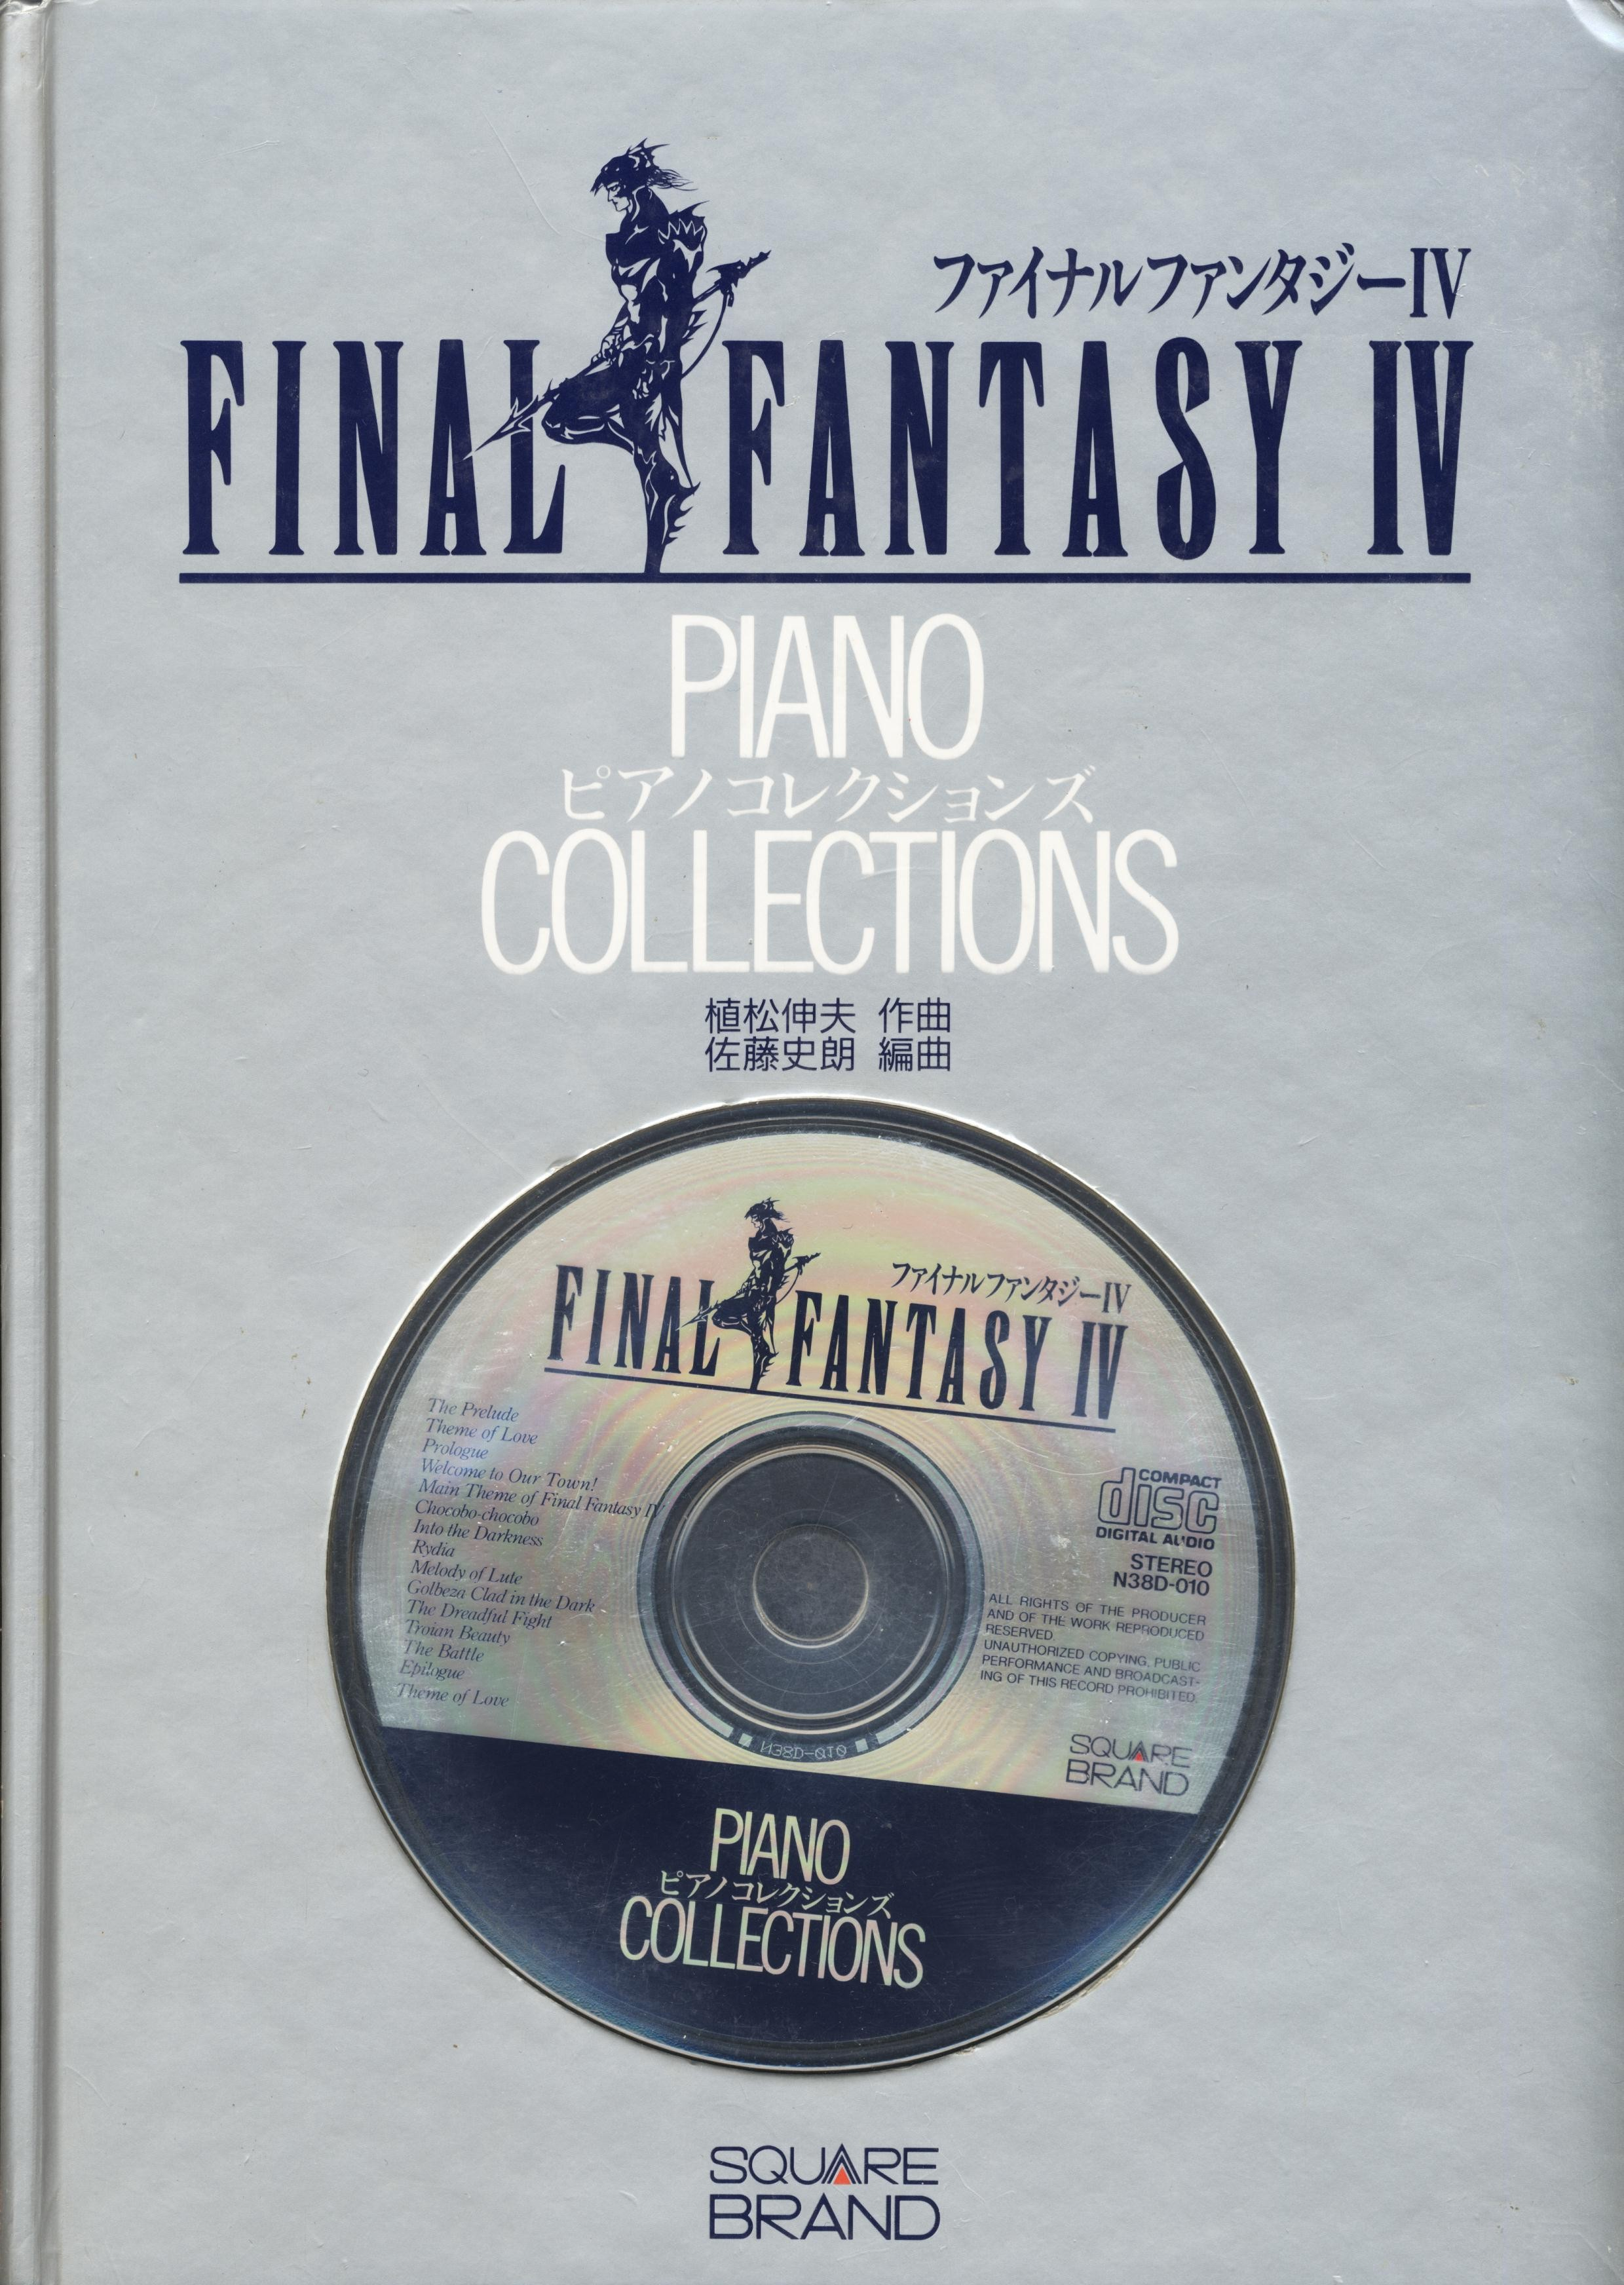 Piano Collections FINAL FANTASY IV